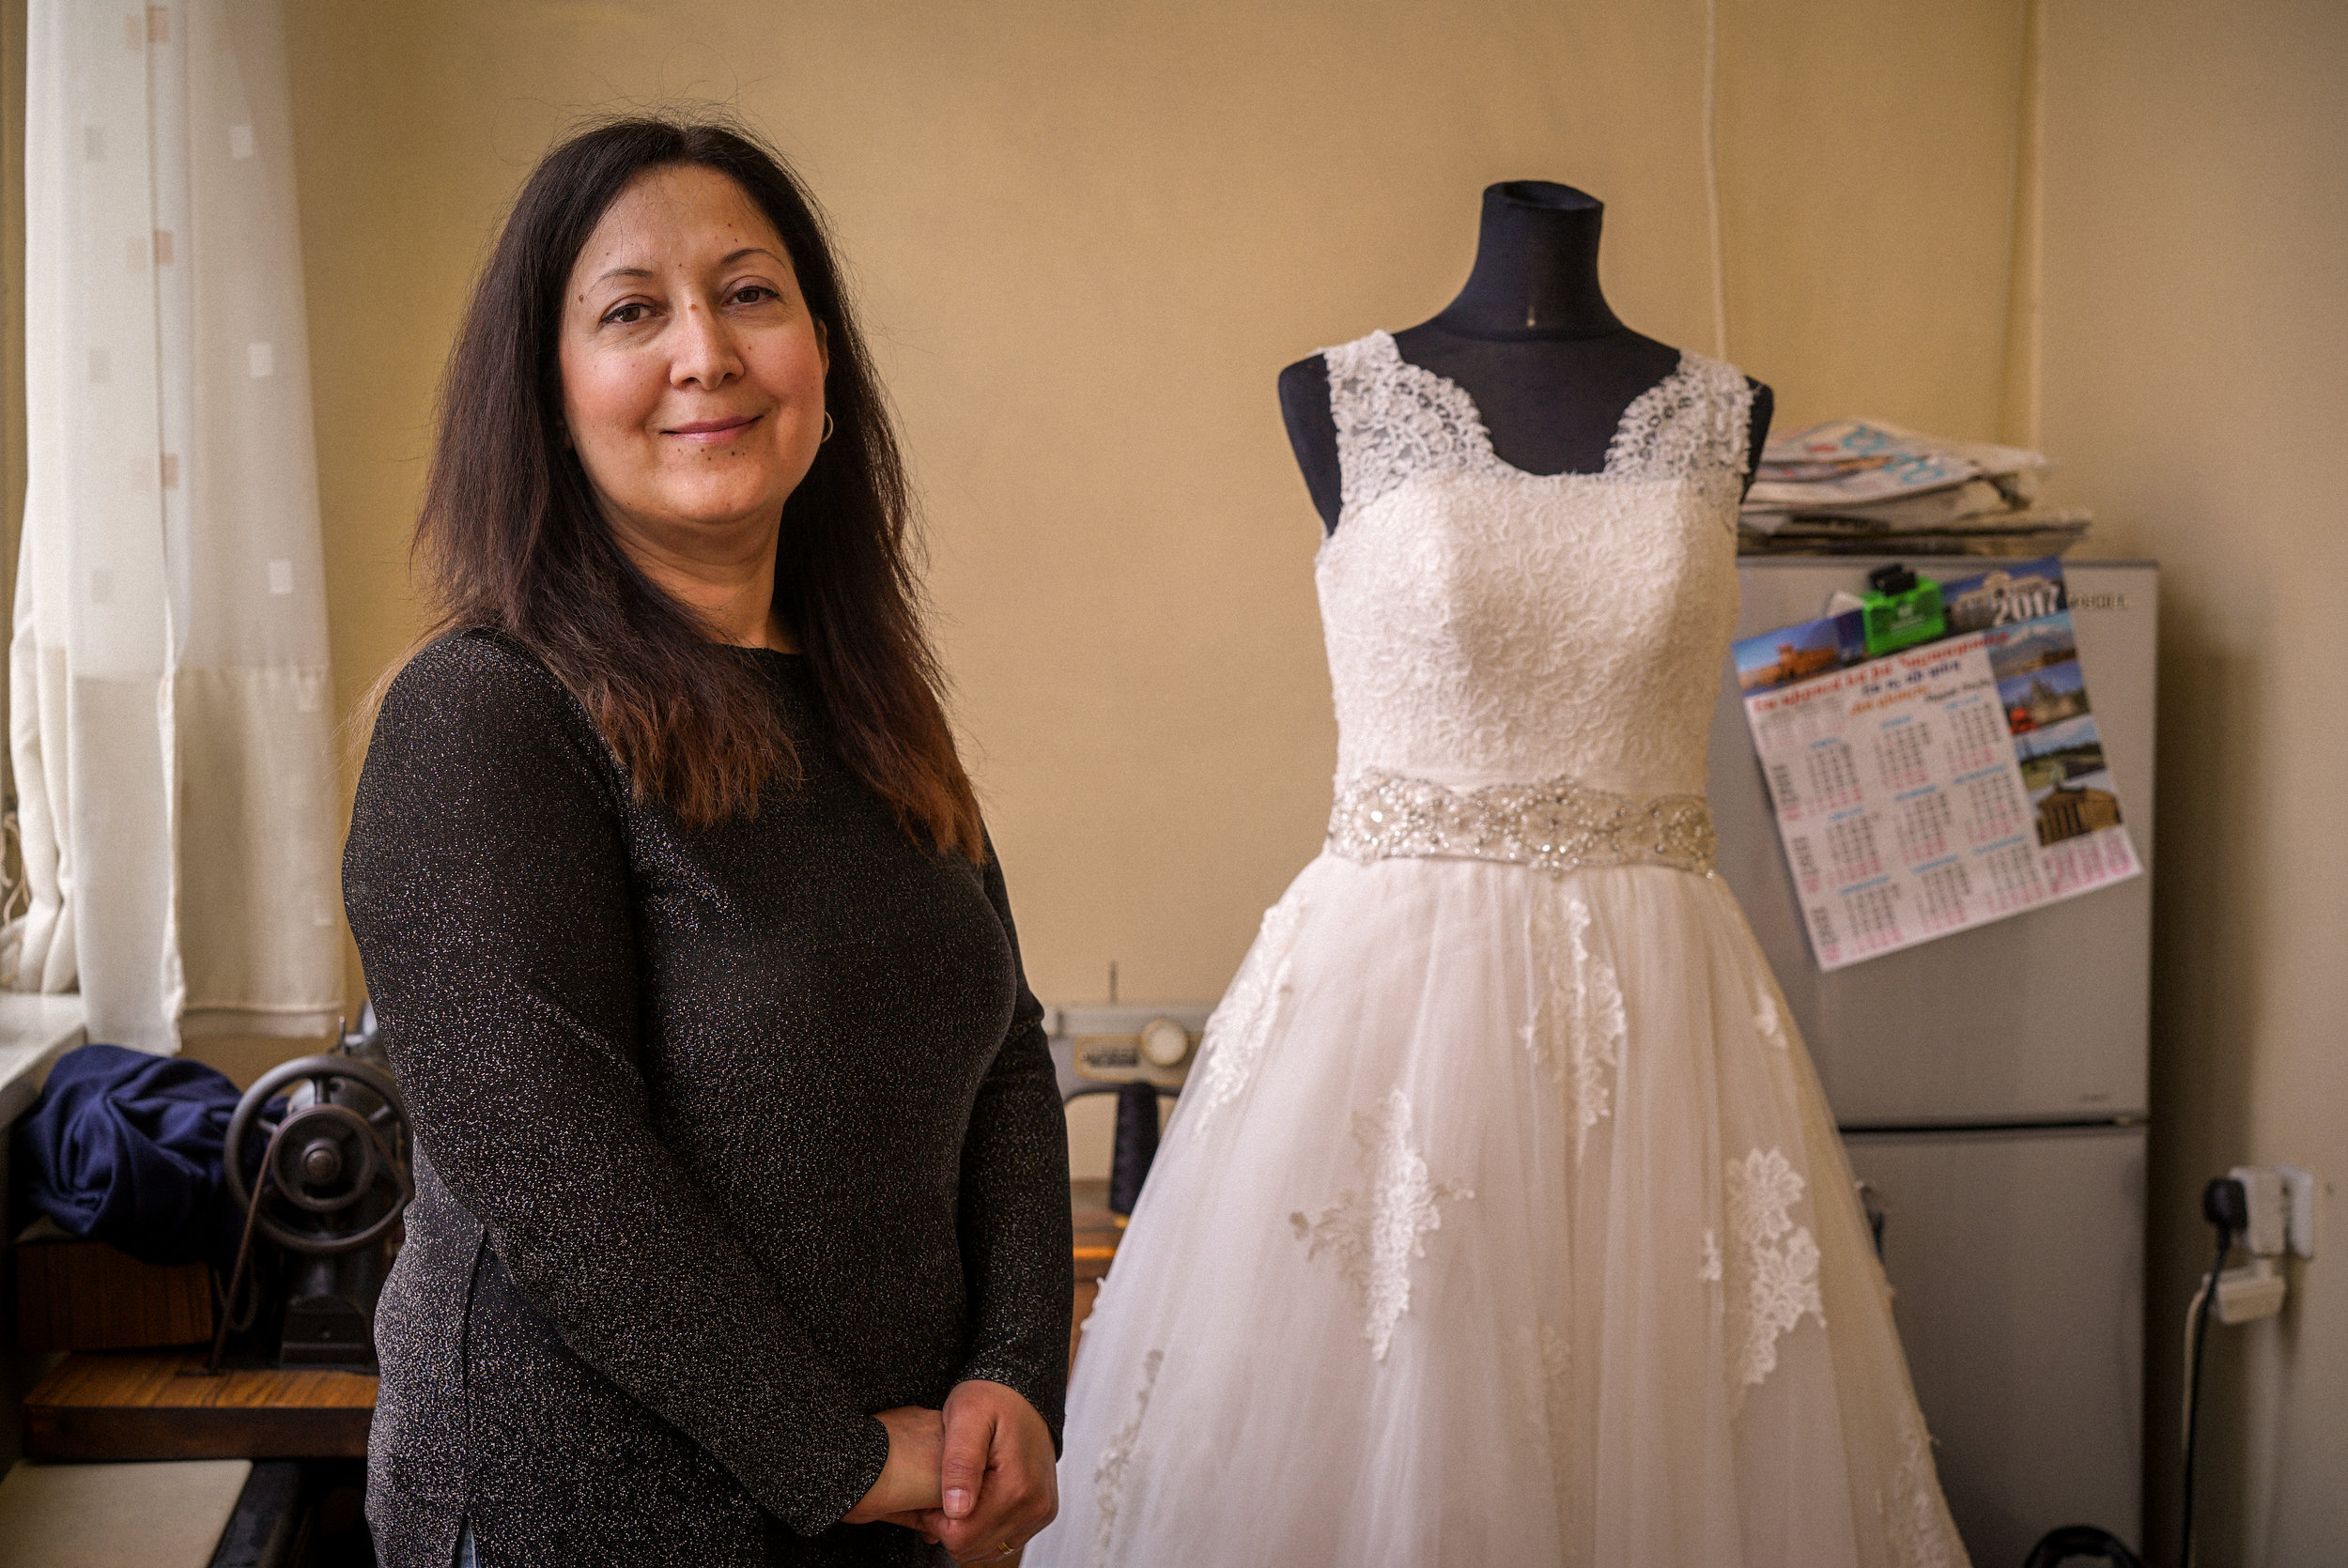 Mary Rose was hired to redesign this wedding dress.